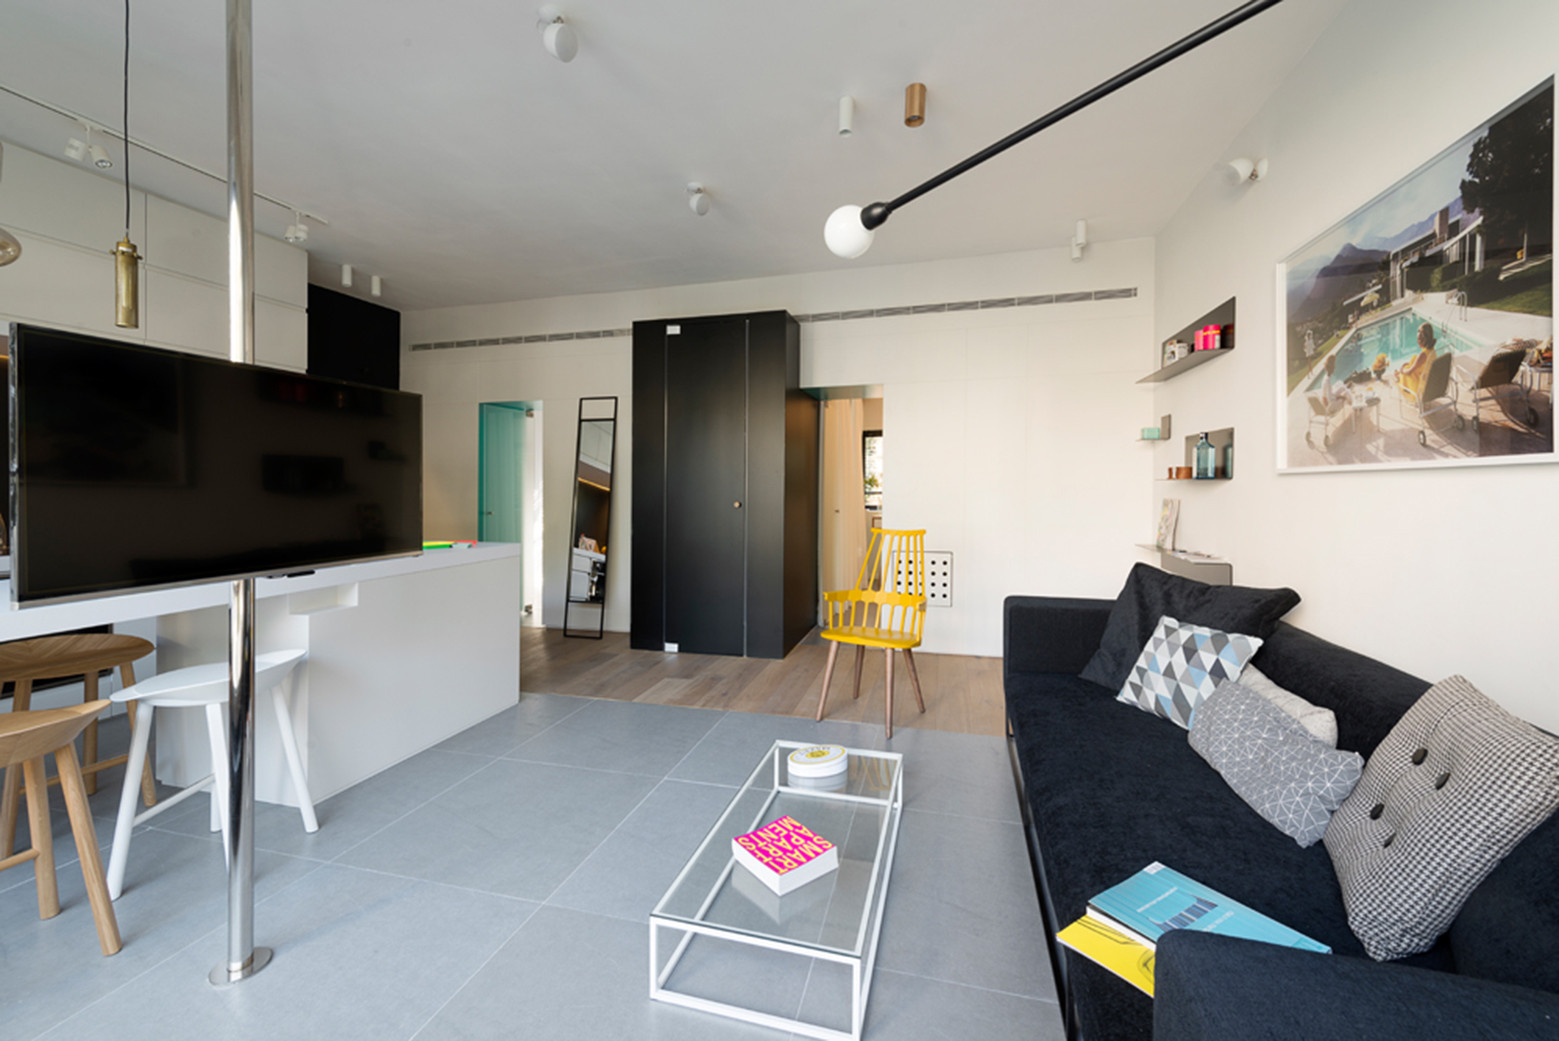 Gallery of apartment in tel aviv amir navon studio 6b for Square room design